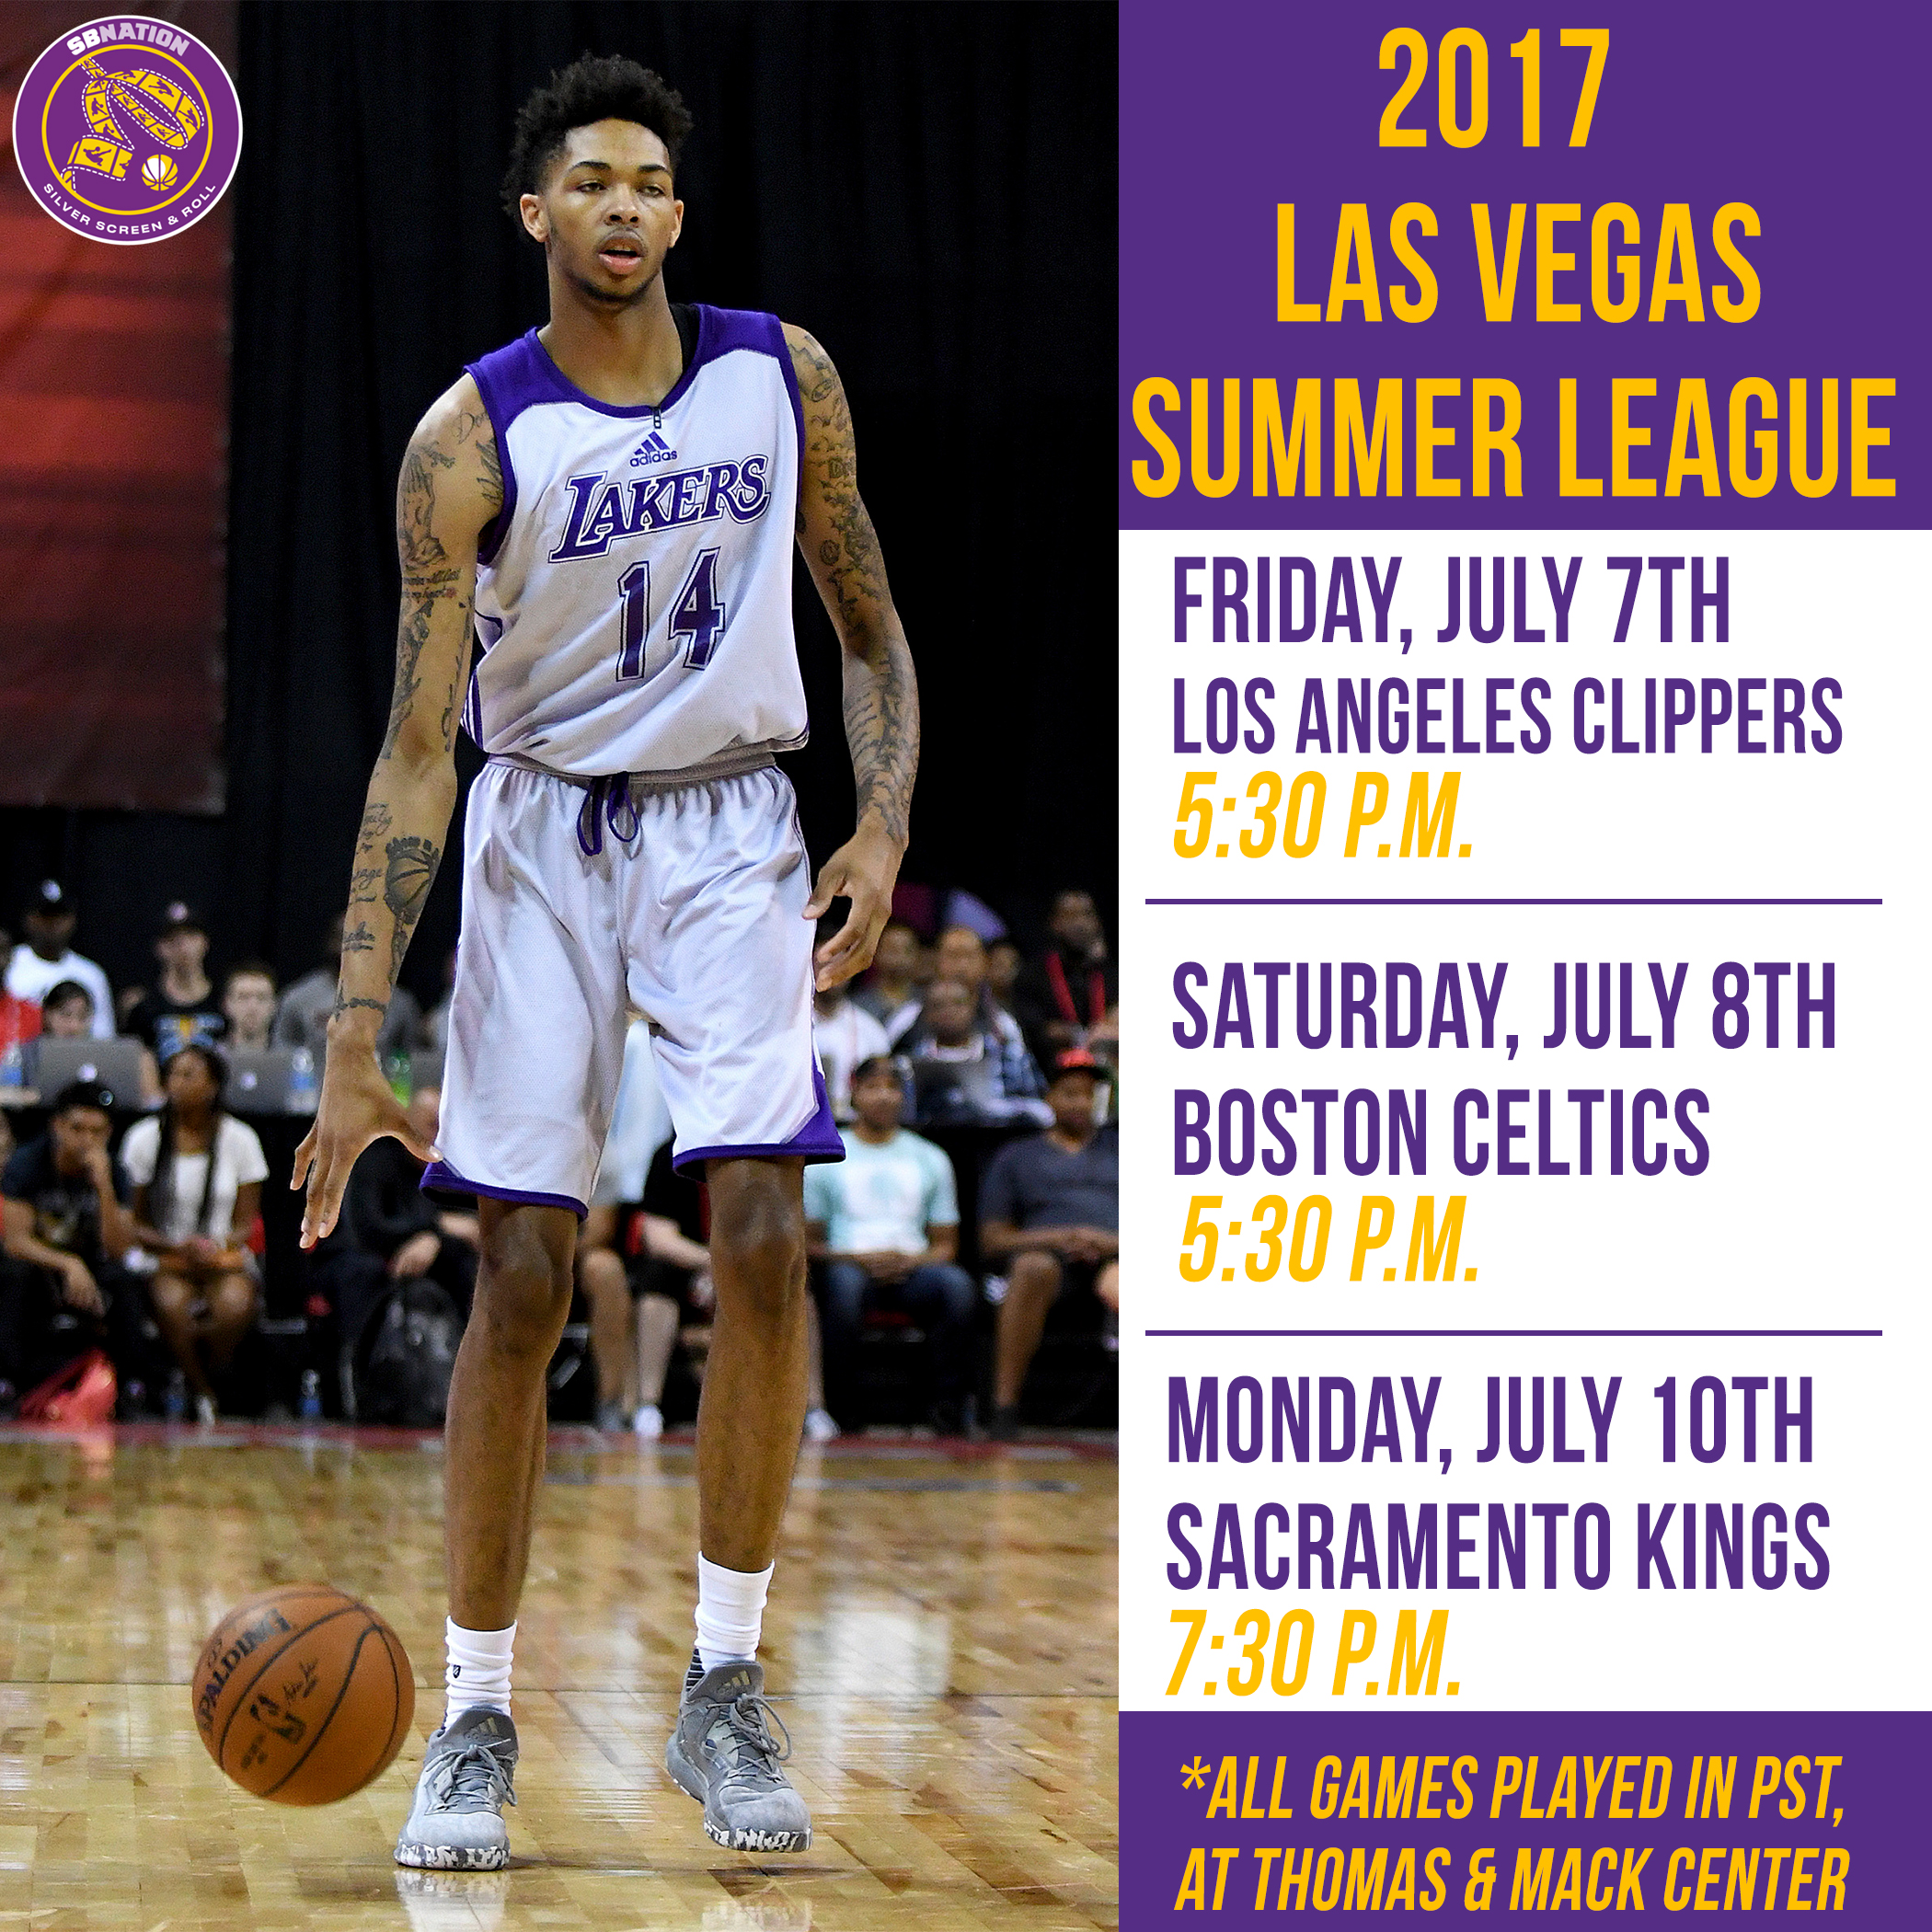 Lakers' 2017 Las Vegas Summer League Schedule